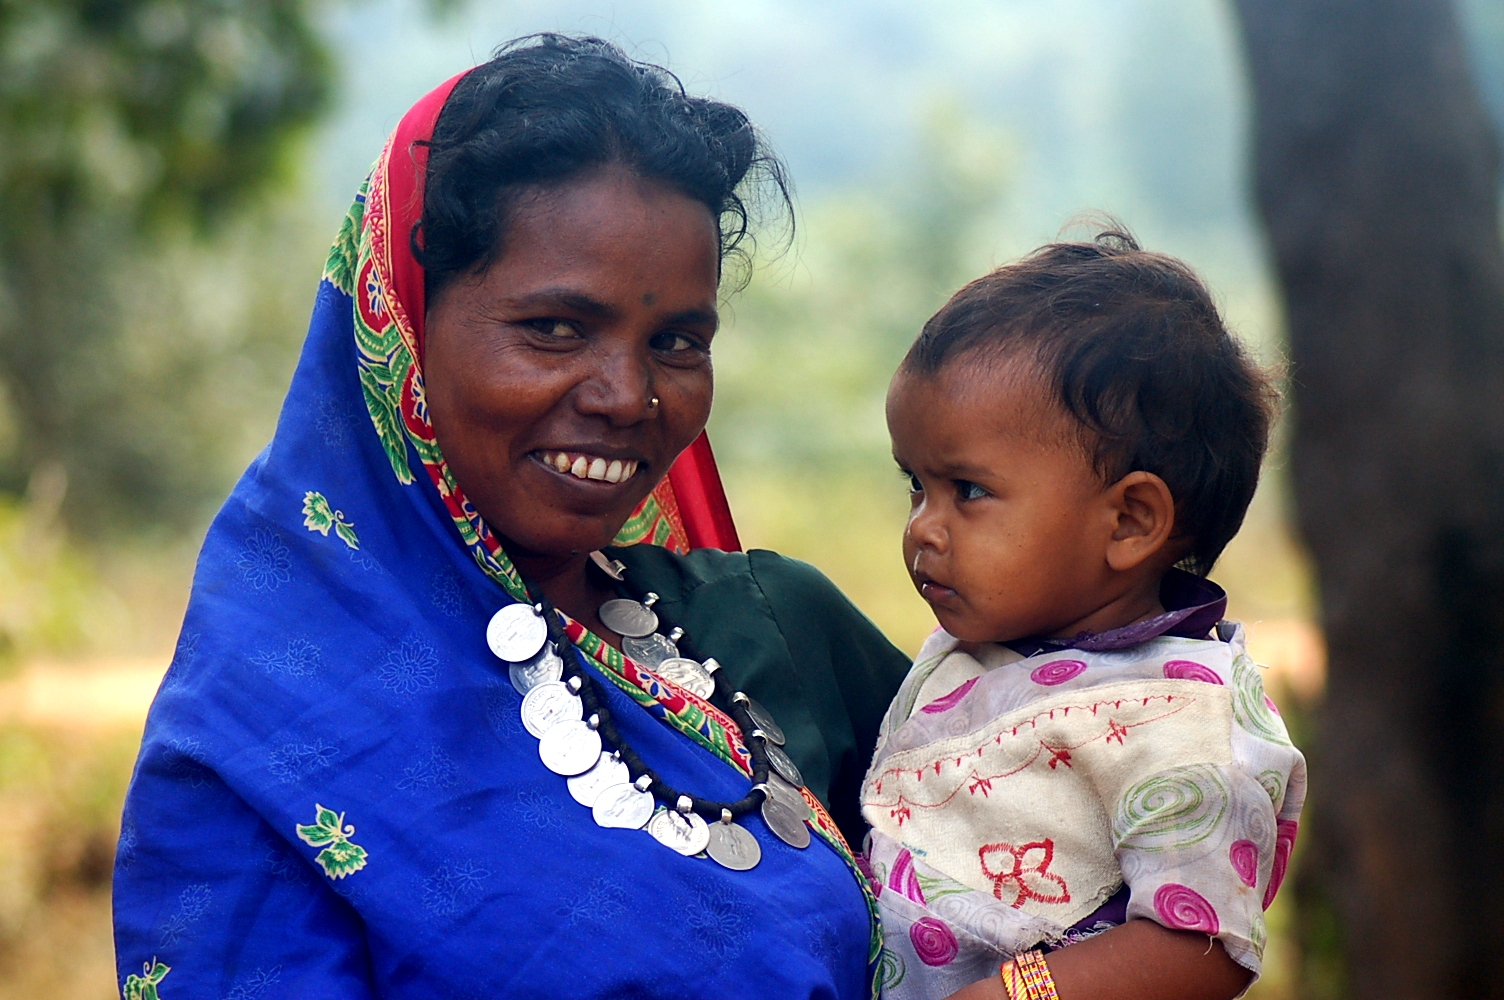 Chattisgarh woman with child. Image source: Wikimedia Commons